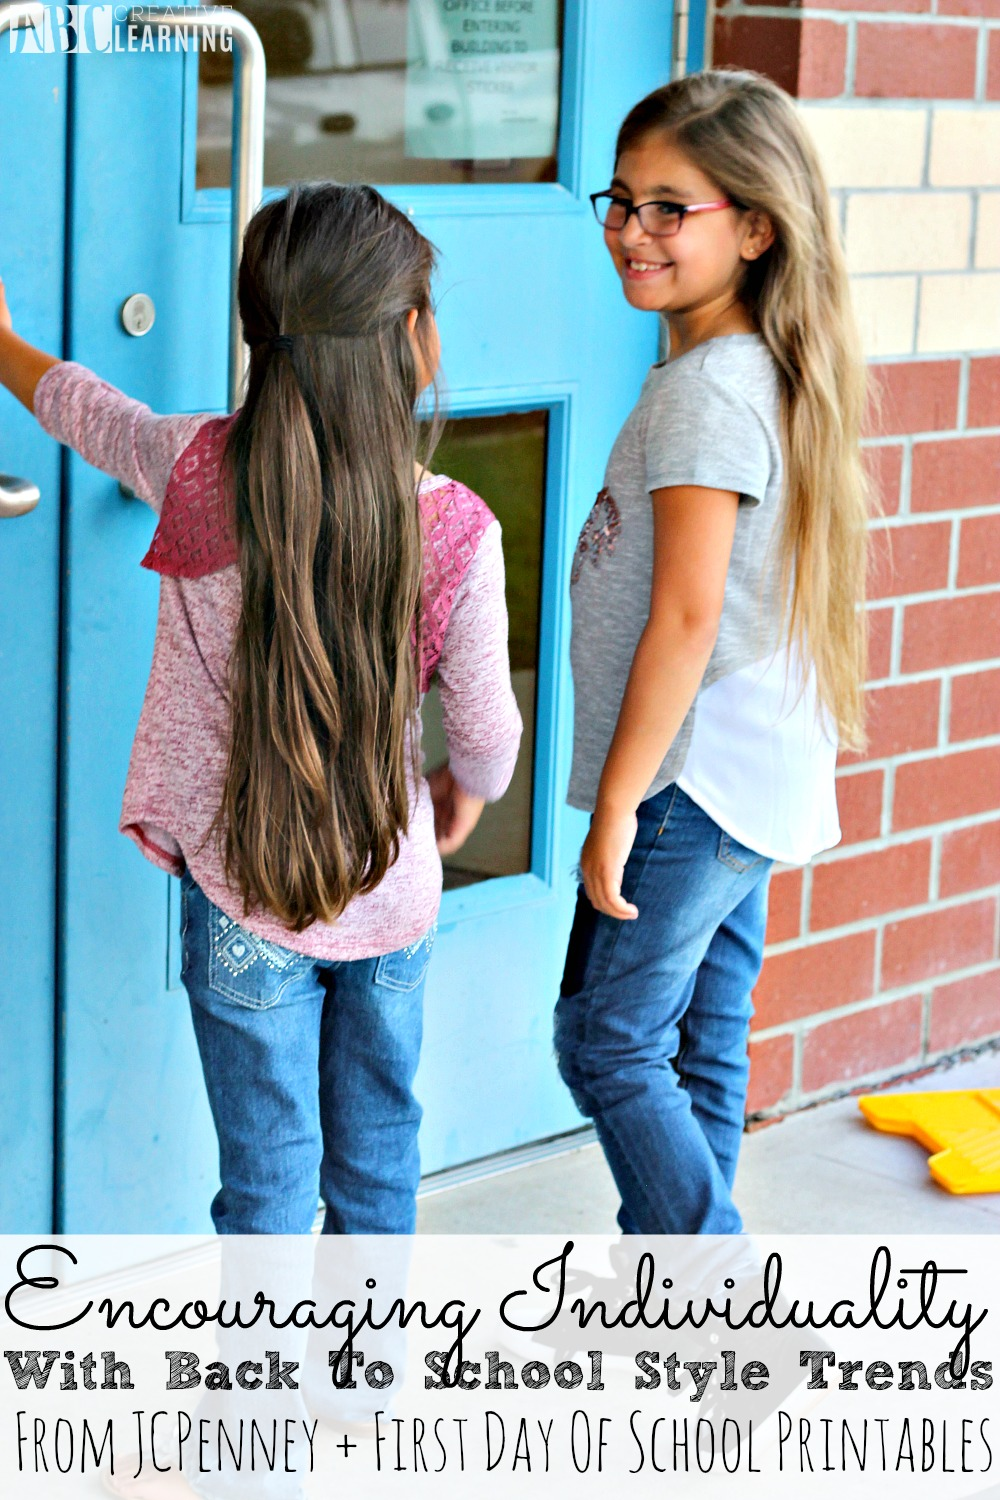 Encouraging Individuality With Back To School Style Trends From Jcpenney First Day Of School